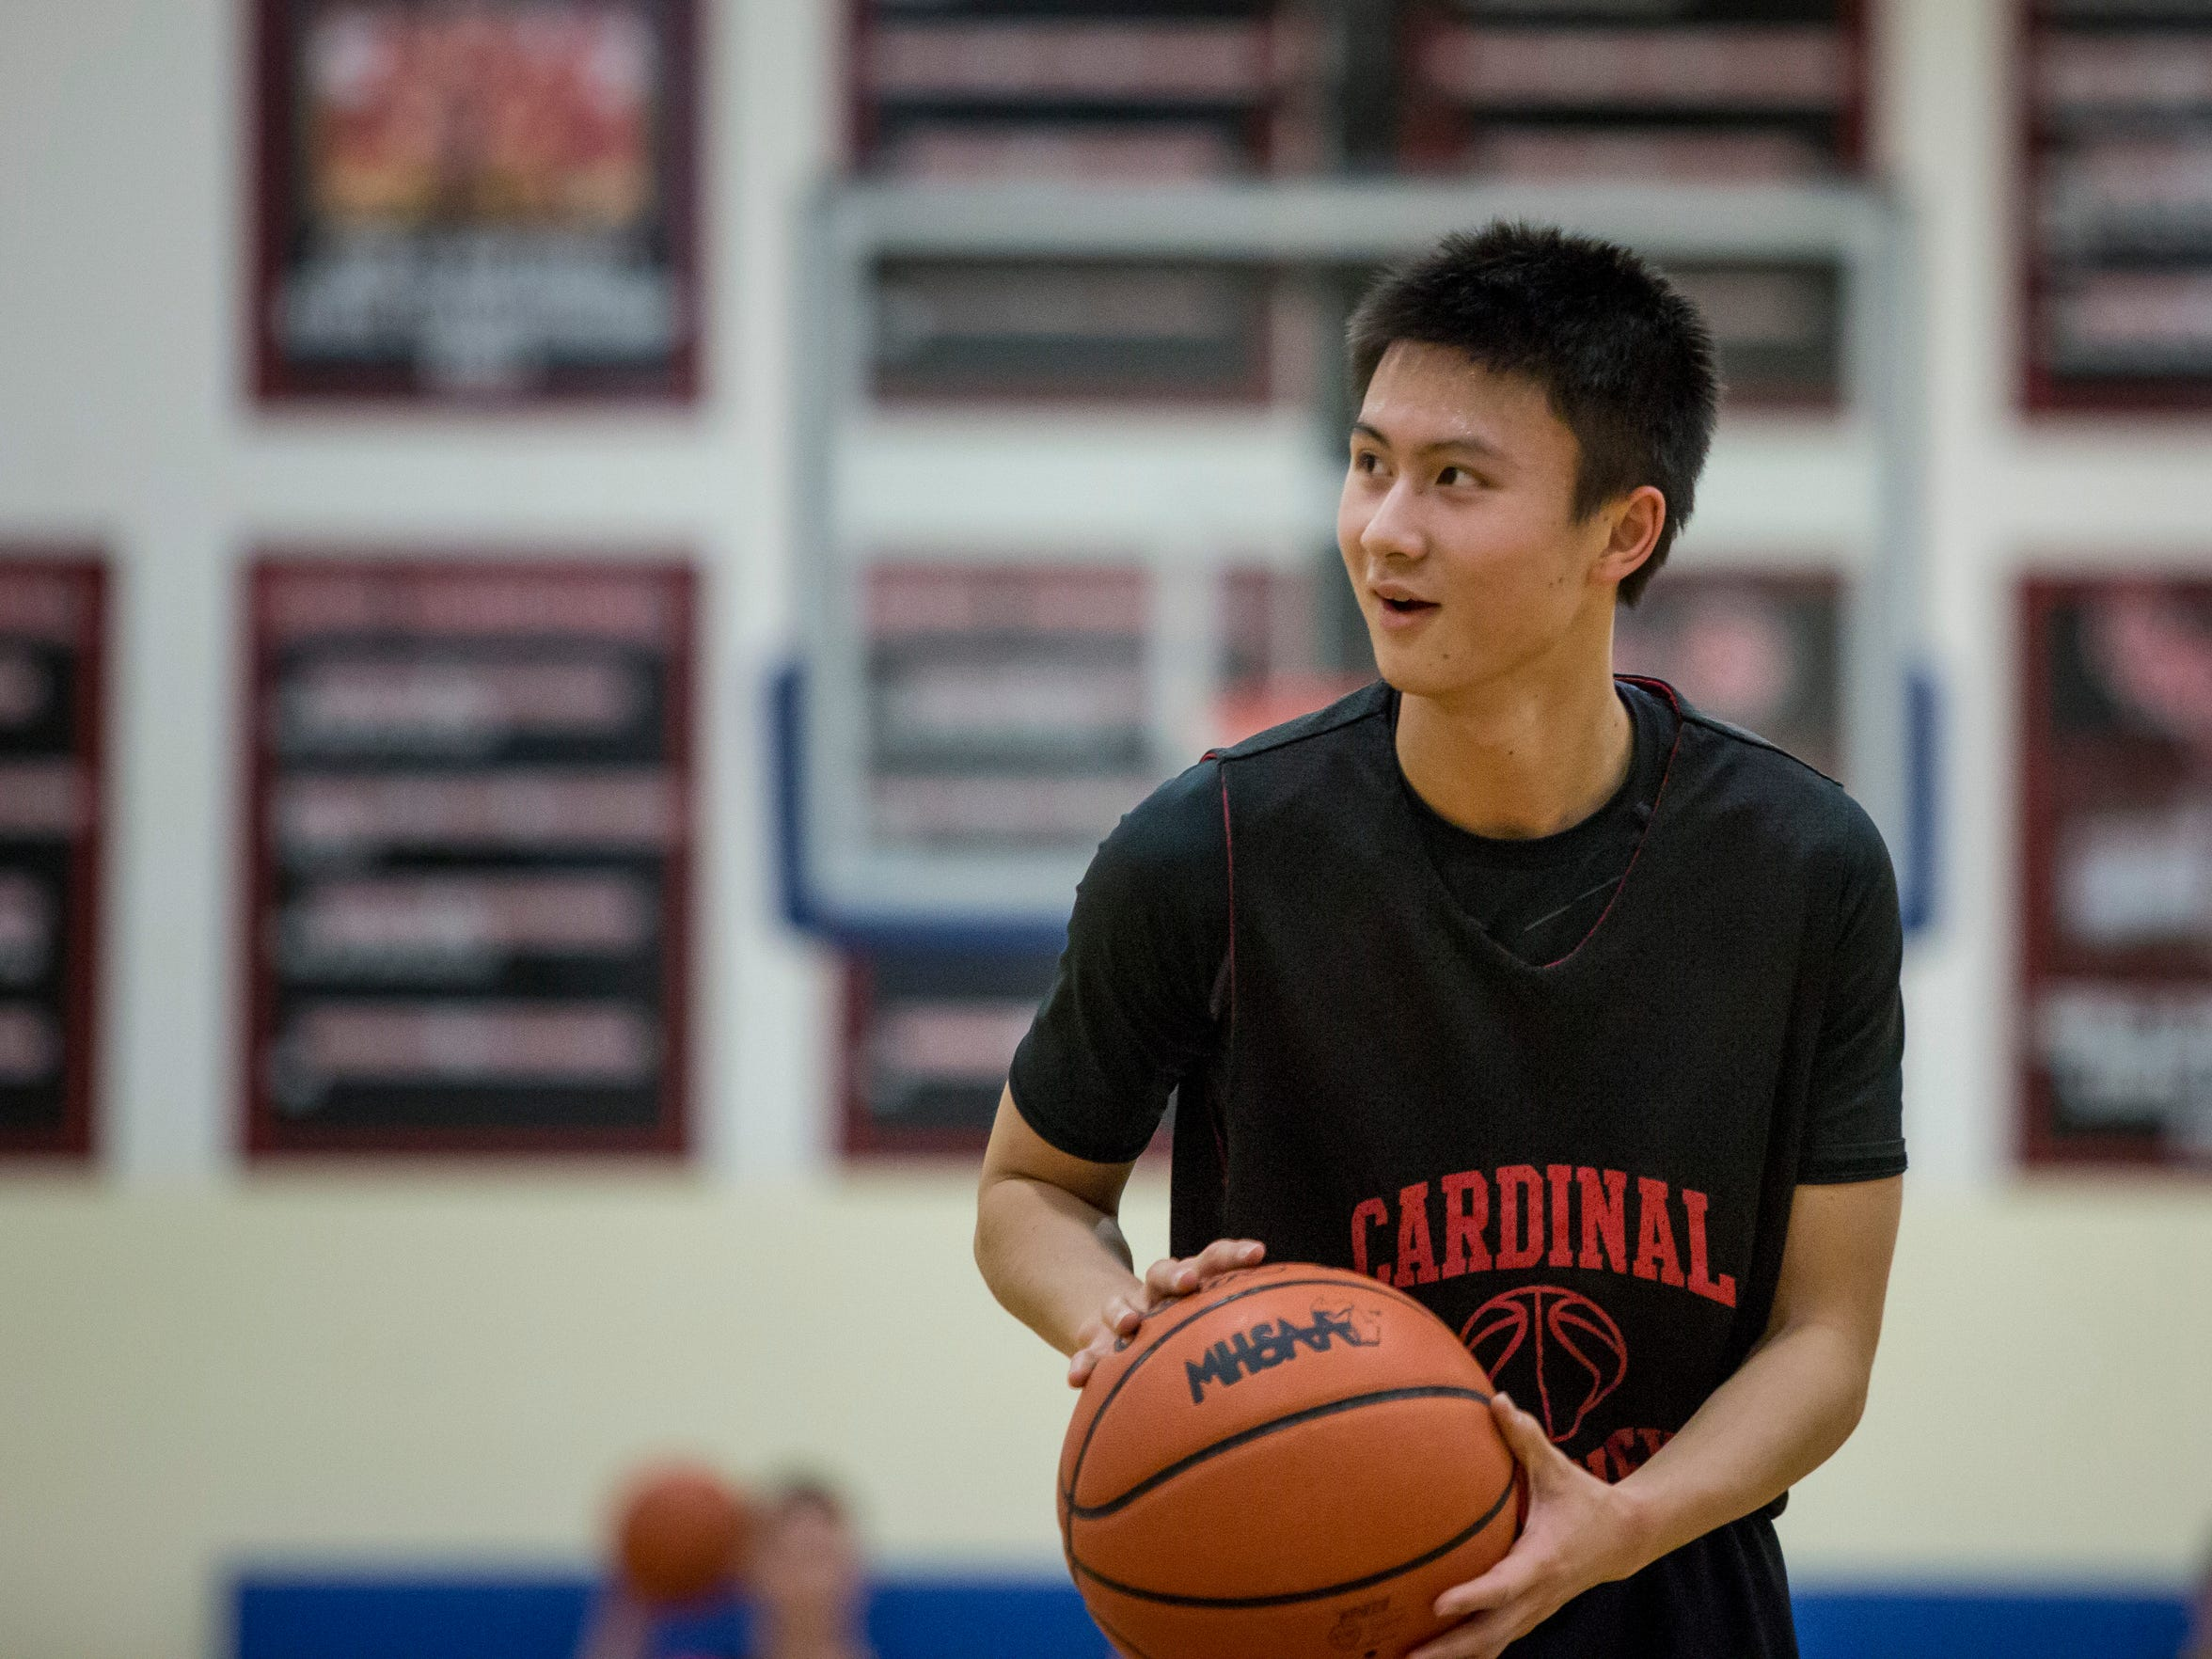 Senior Chris Xuan, 19, chats with teammates as he takes a shot during basketball practice Wednesday, Jan. 27, 2016 at Cardinal Mooney High School in Marine City. Xuan is an exchange student from Shenzhen, China.